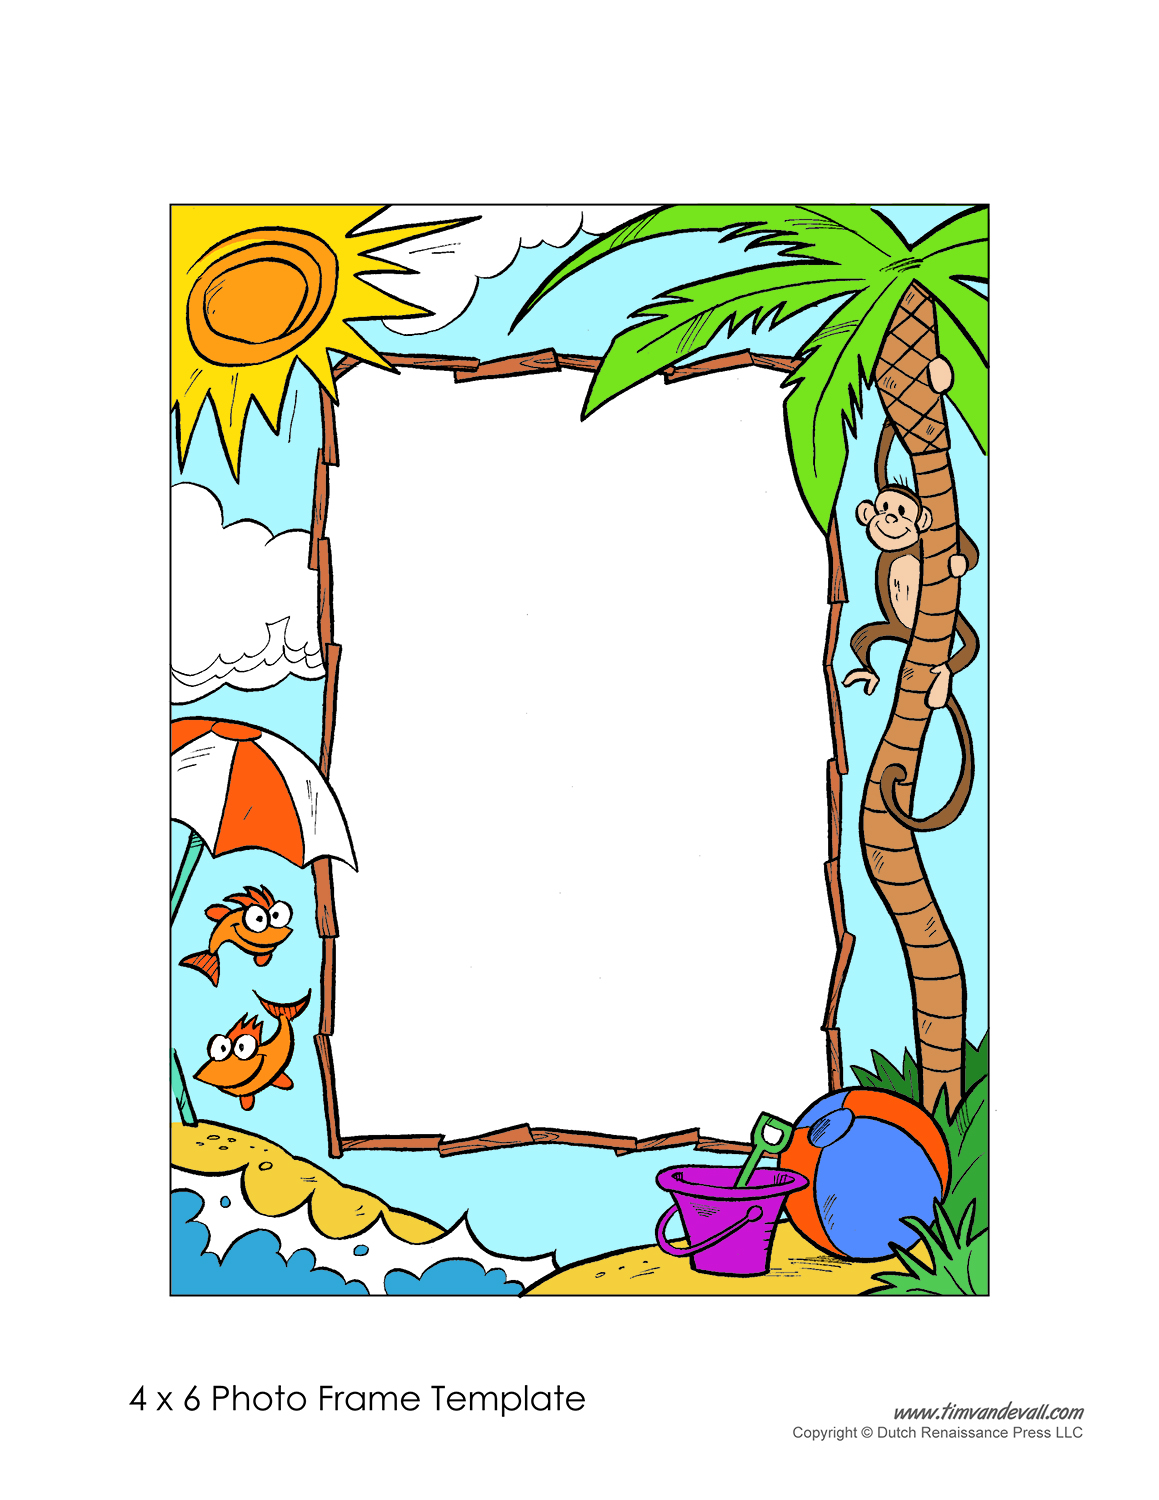 image regarding Printable Frame identify No cost Photograph Body Templates - Create Your Private Image Body